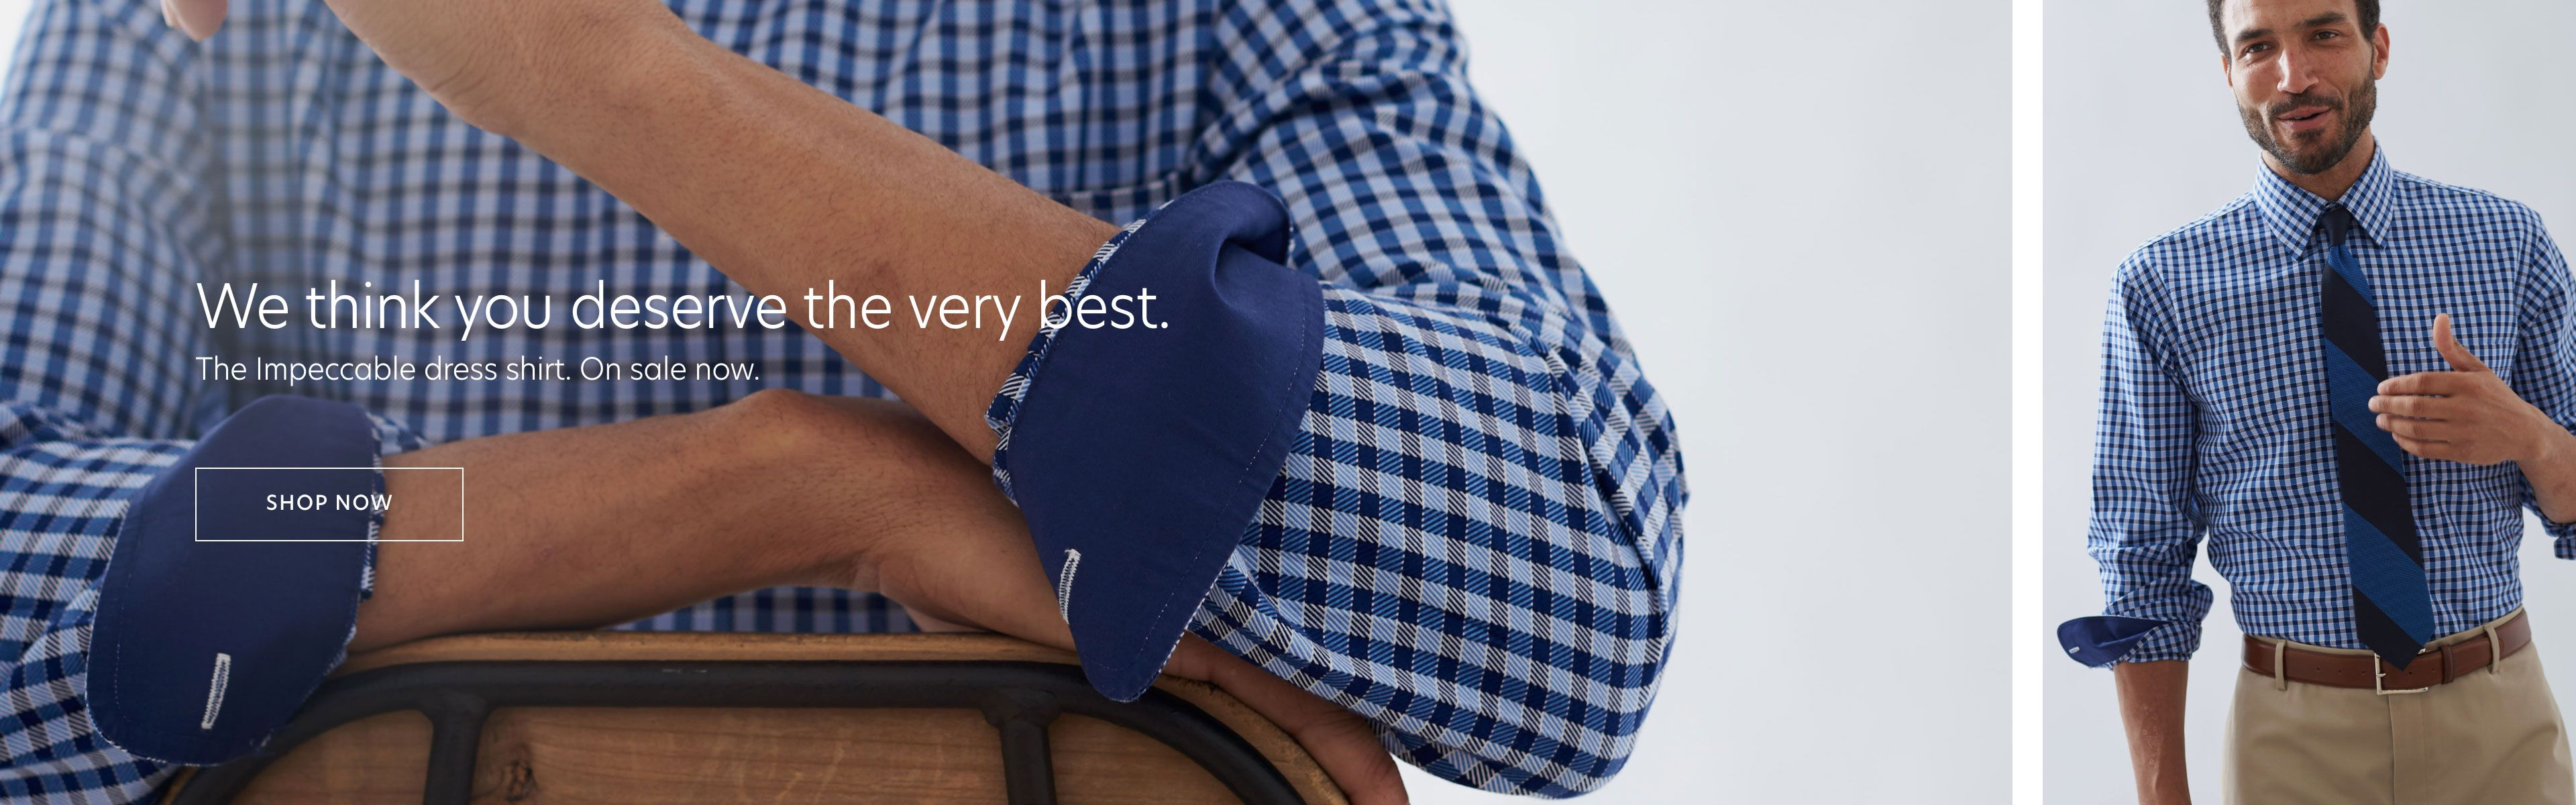 Non-Iron Impeccable Dress Shirts